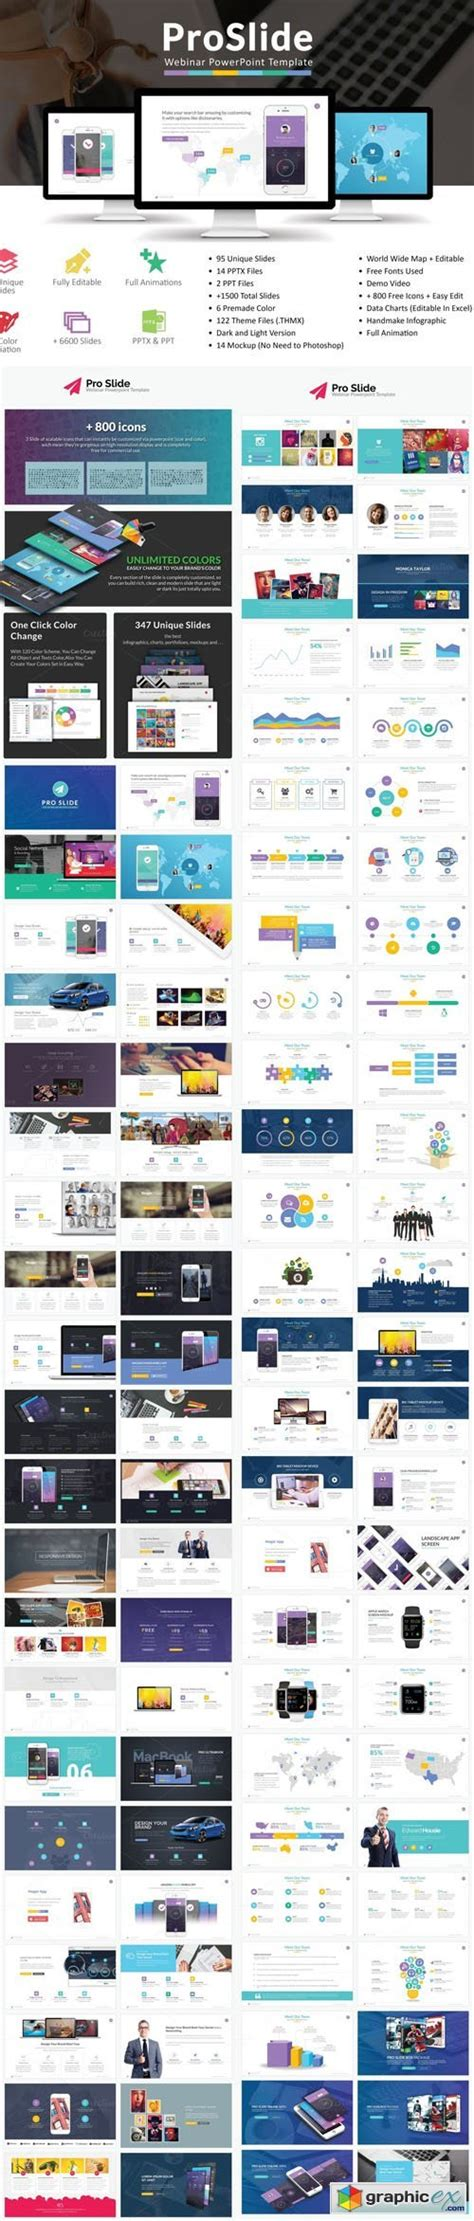 webinar powerpoint templates proslide webinar powerpoint template 187 free vector stock image photoshop icon